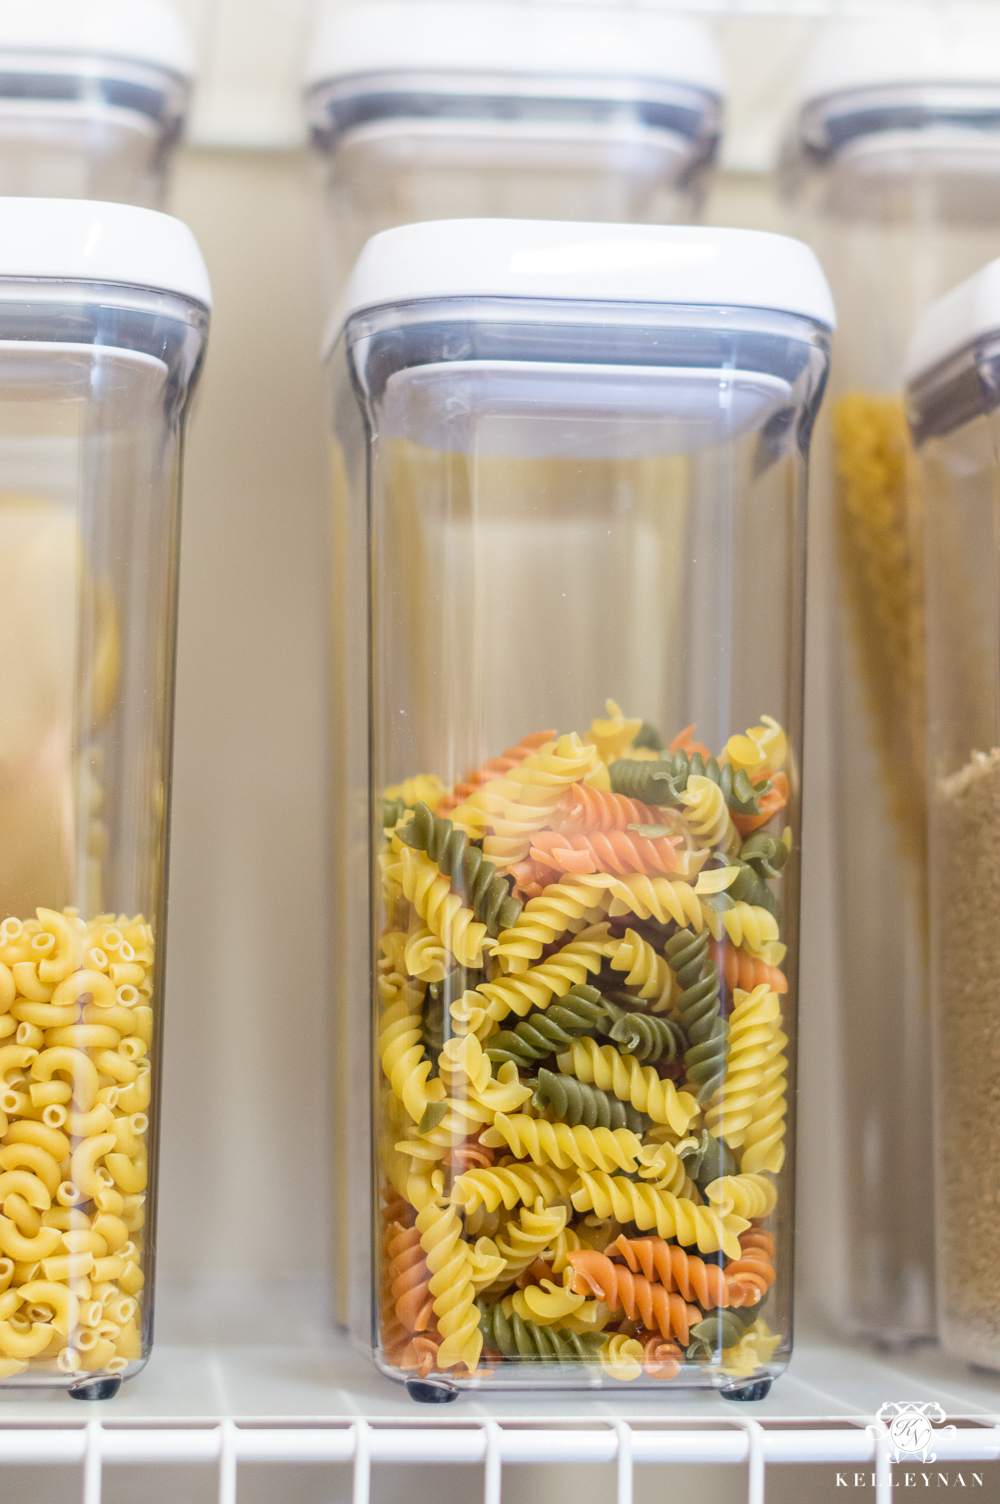 Pop Canisters for pasta in organized pantry